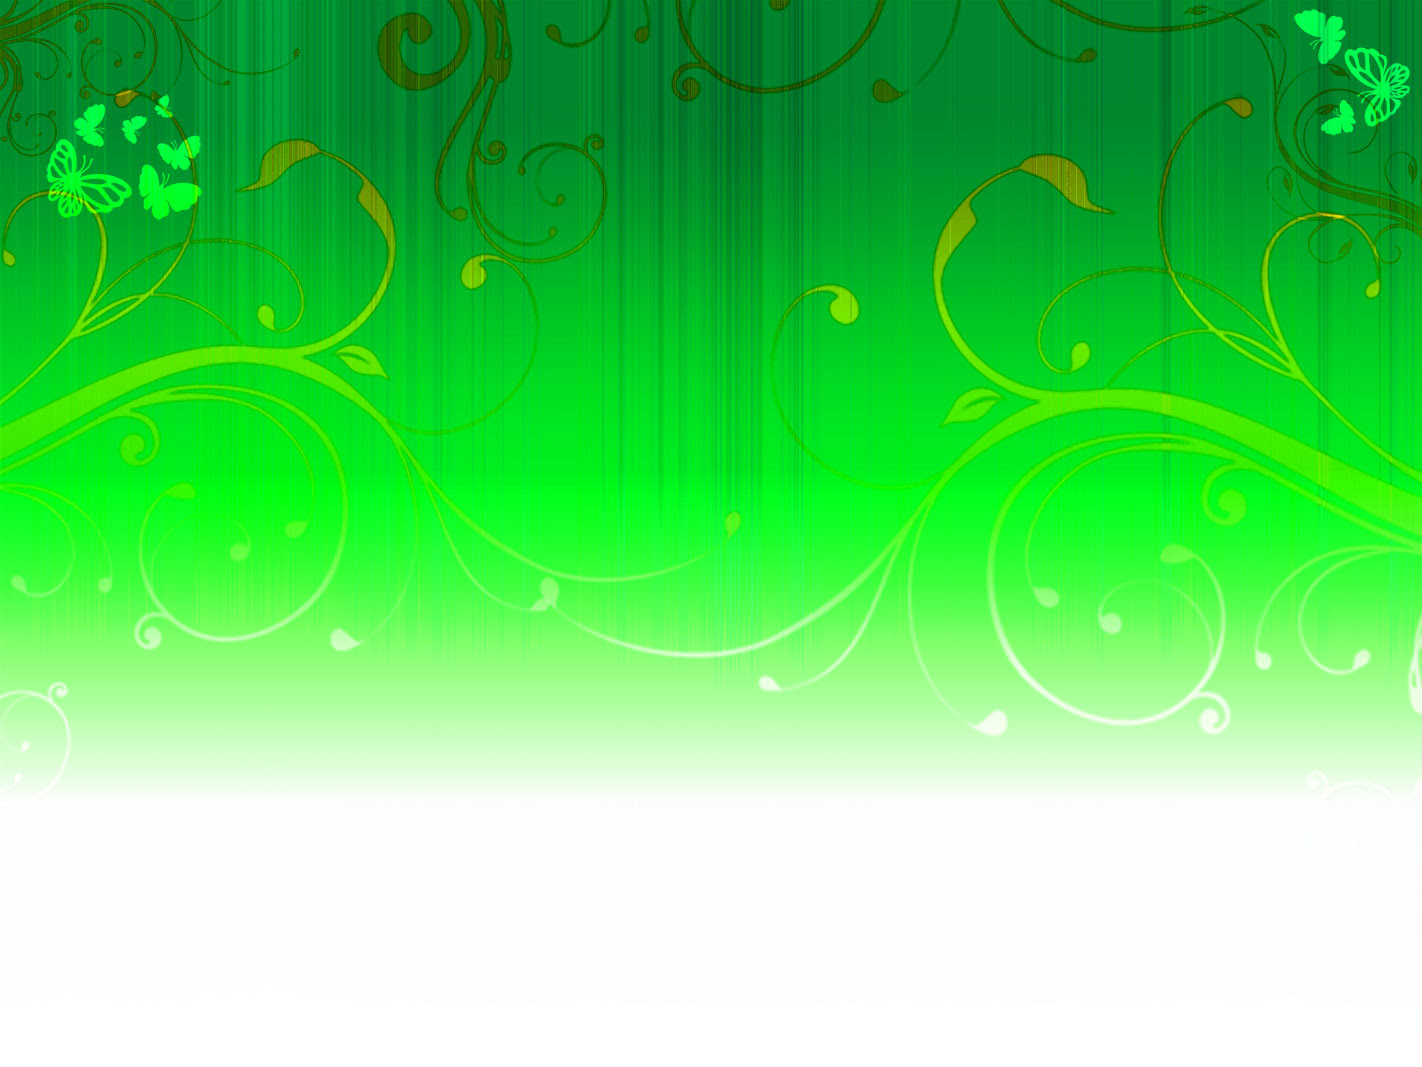 Background Ppt Islami Powerpoint Backgrounds For Free Powerpoint Templates